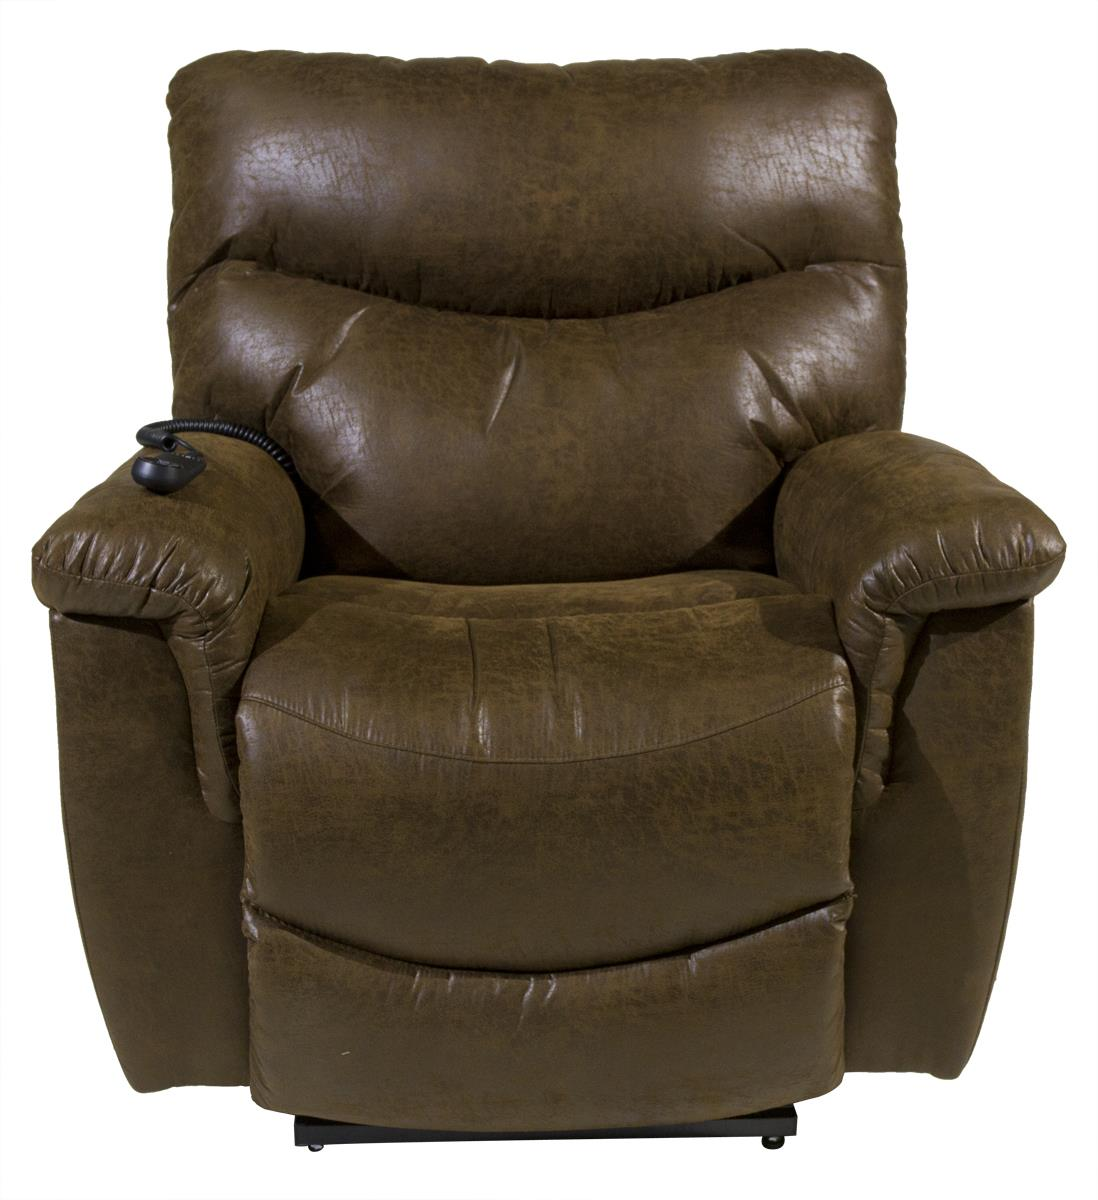 La-Z-Boy James Luxury-Lift® Power Recliner - Item Number: 4LP521 RE994778